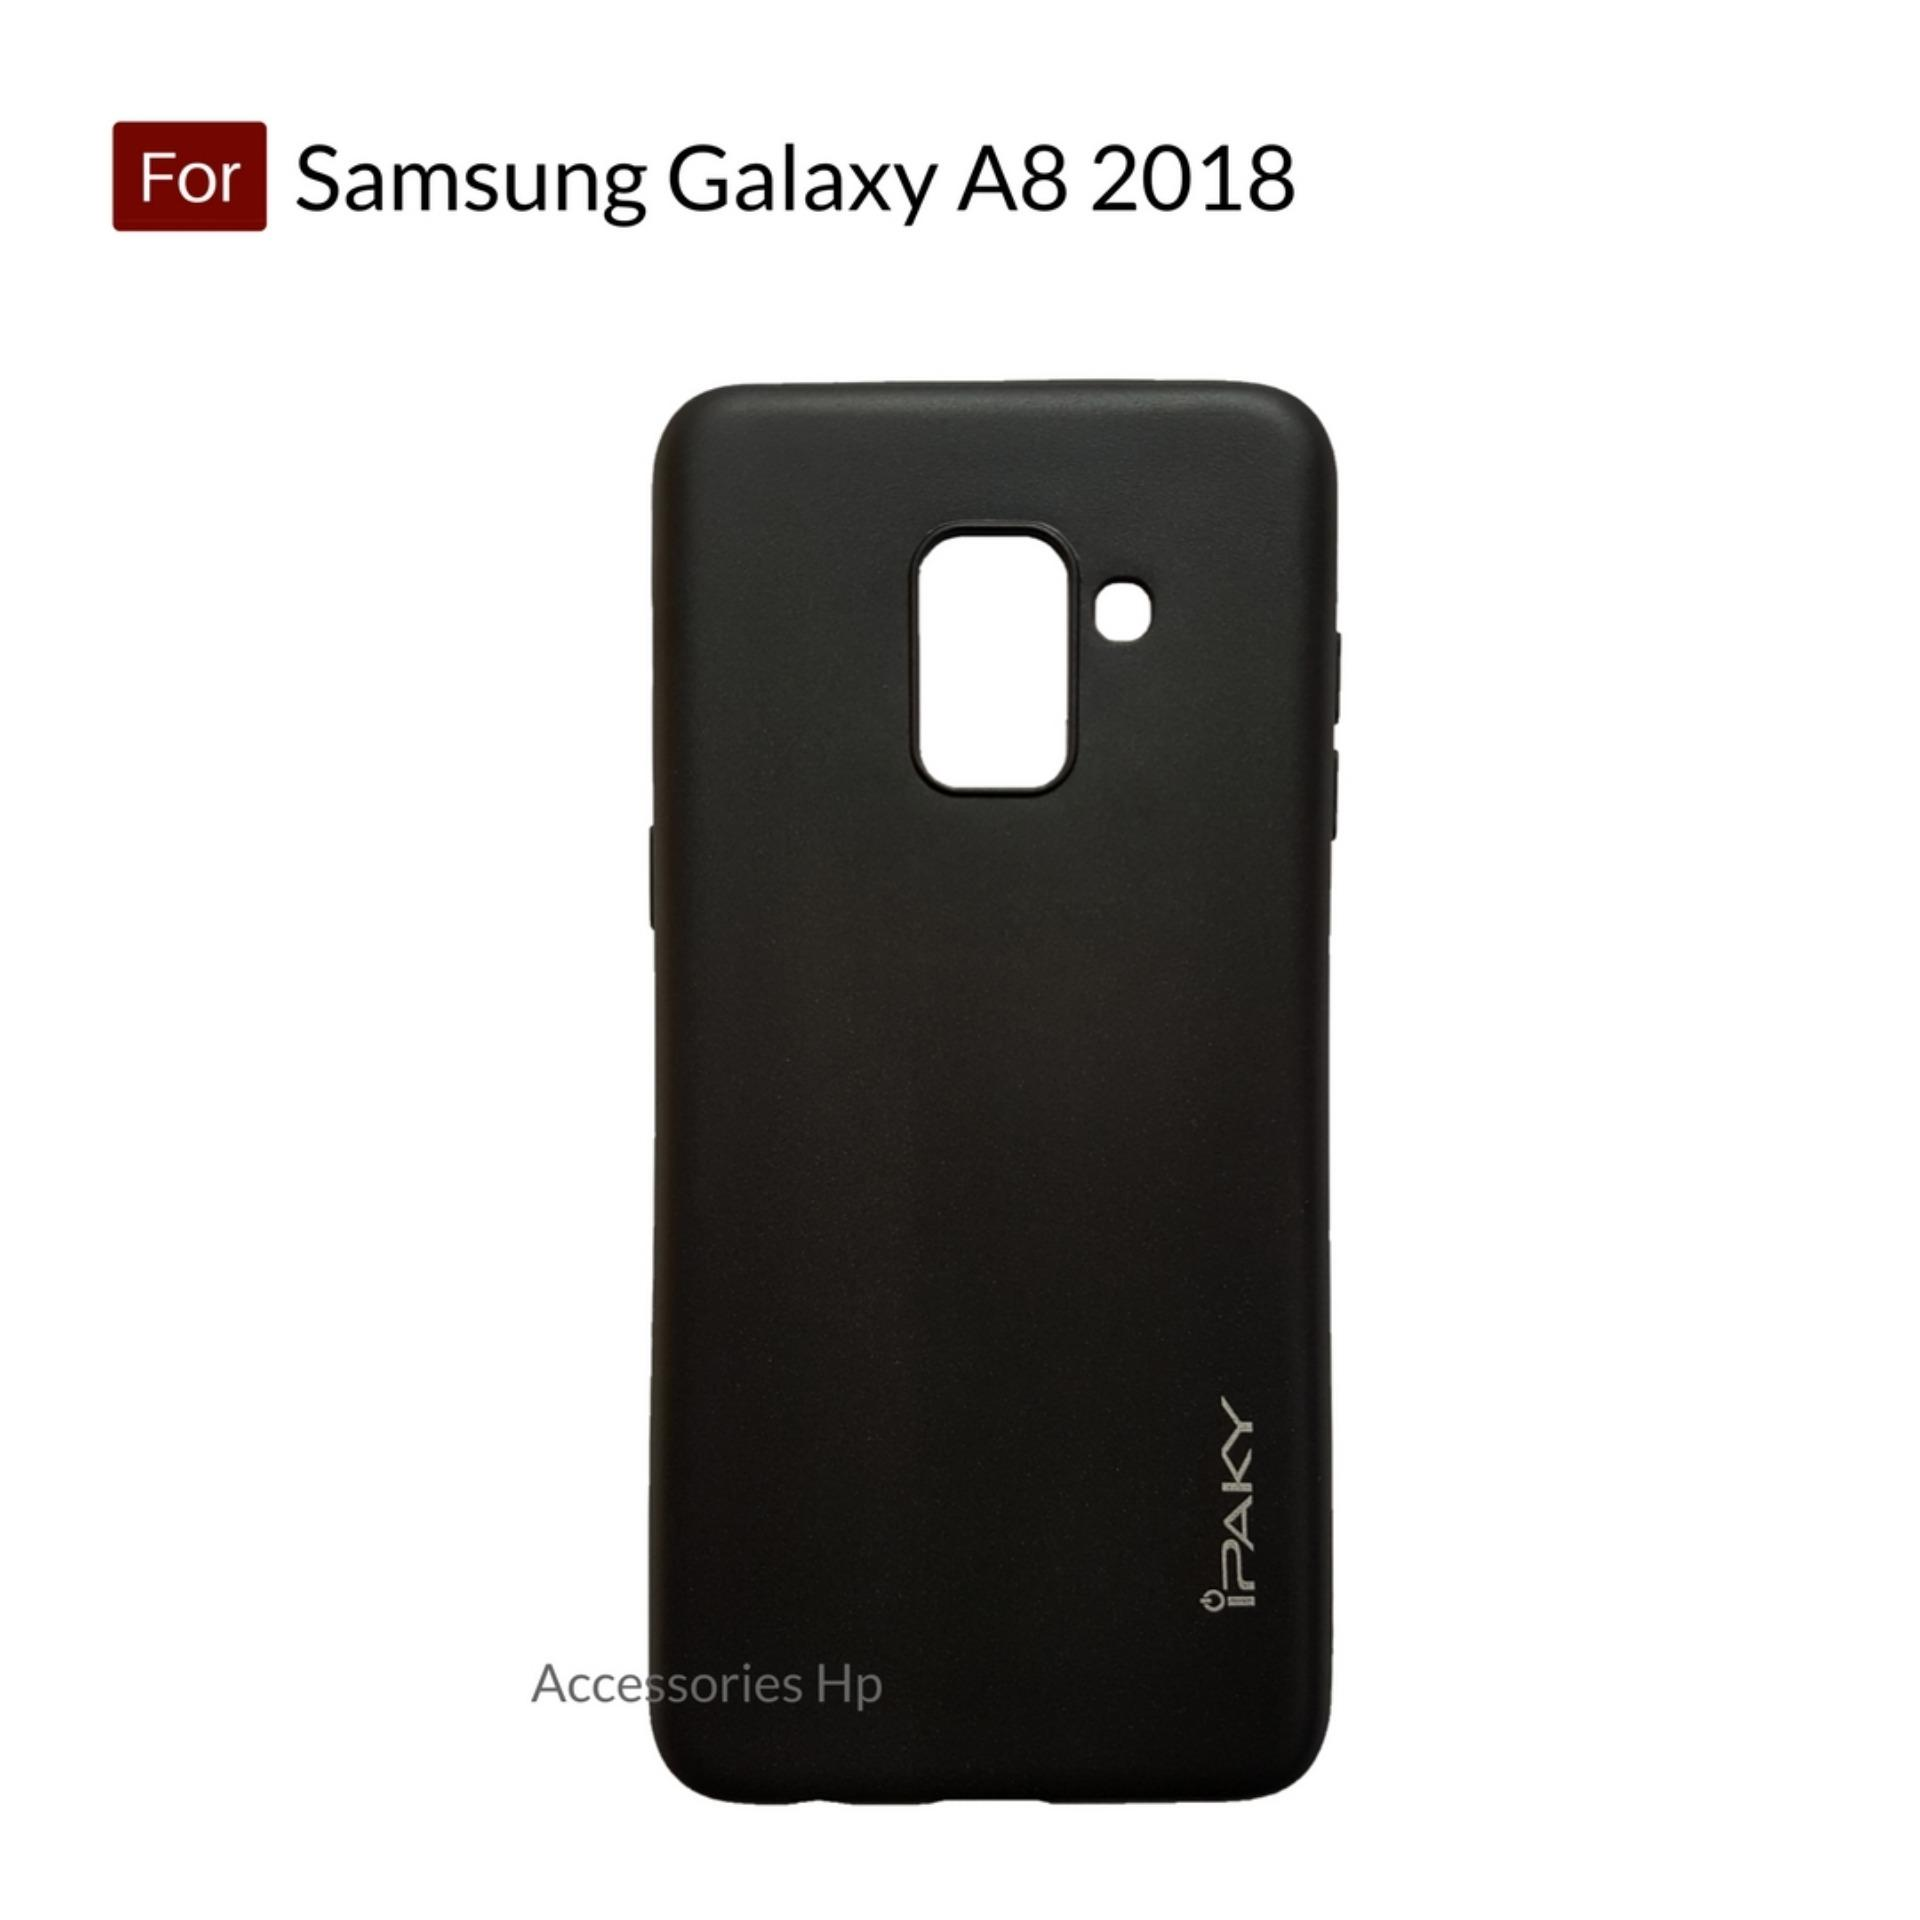 Accessories Hp iPaky Super Slim Matte Anti Fingerprint Hybrid Case For Samsung Galaxy A8 2018 - Black